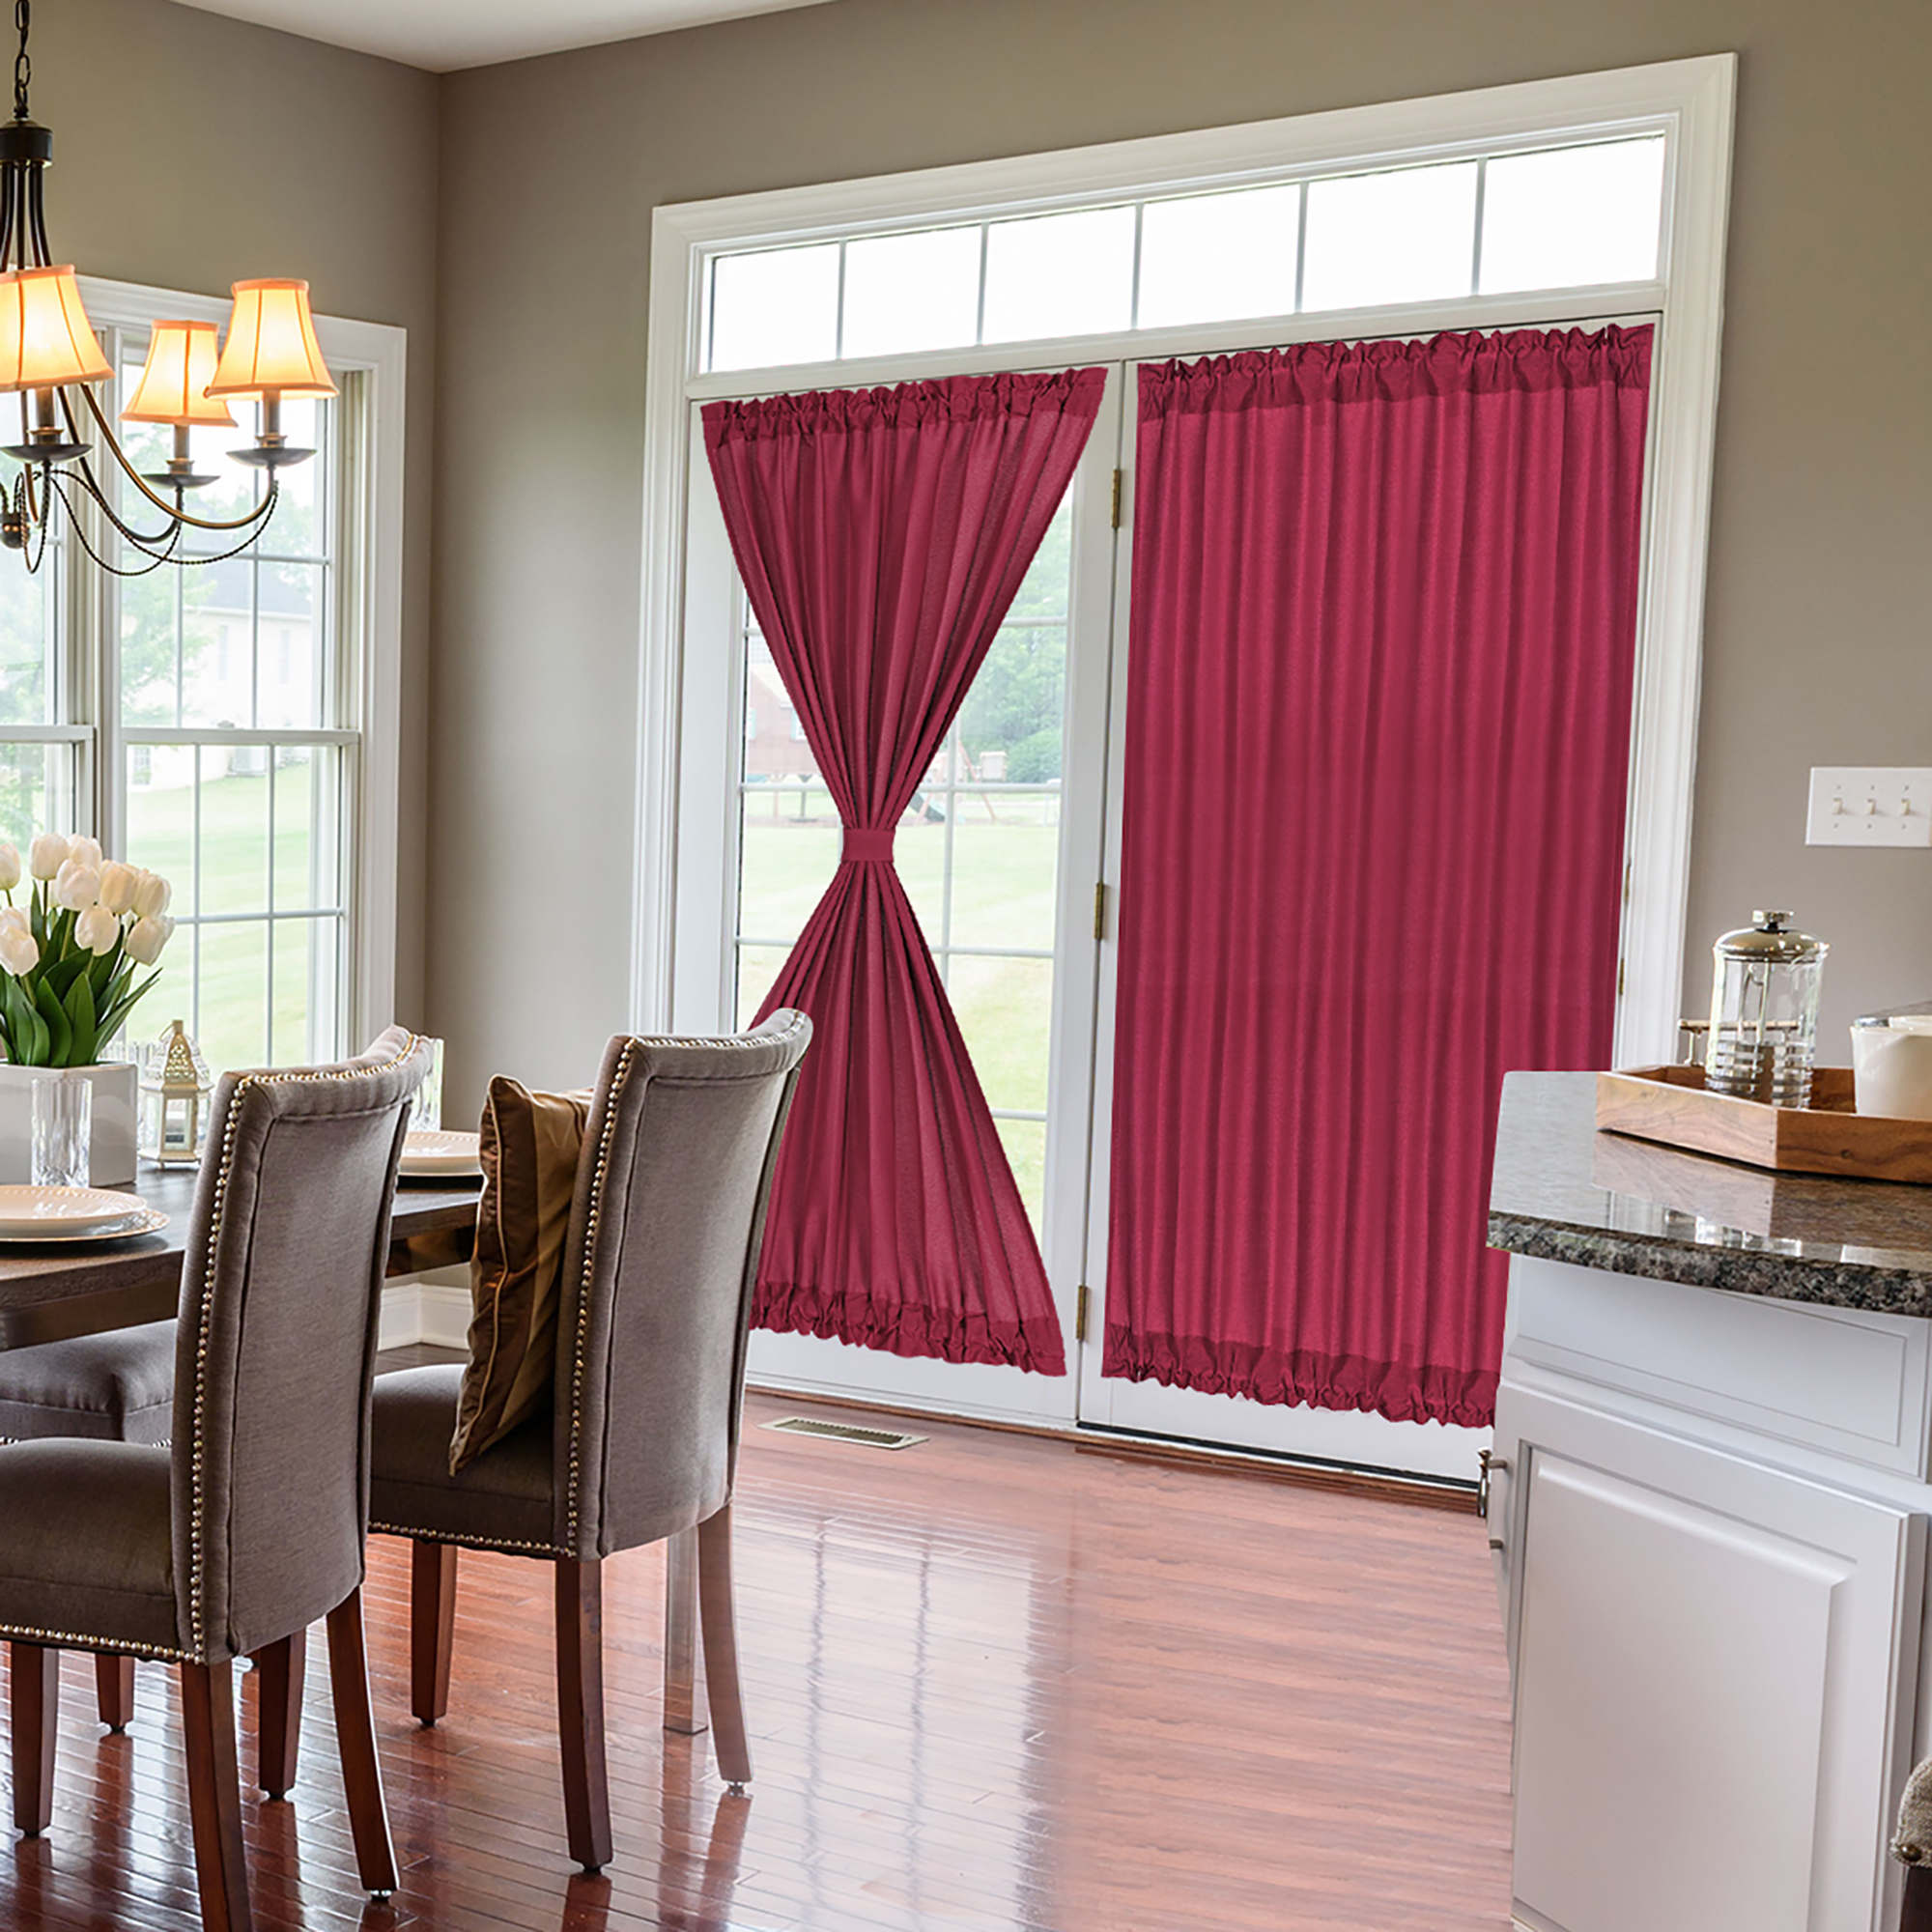 french door curtains thermal insulated blackout curtain rod door window panel curtain 54 x 72 inch burgundy